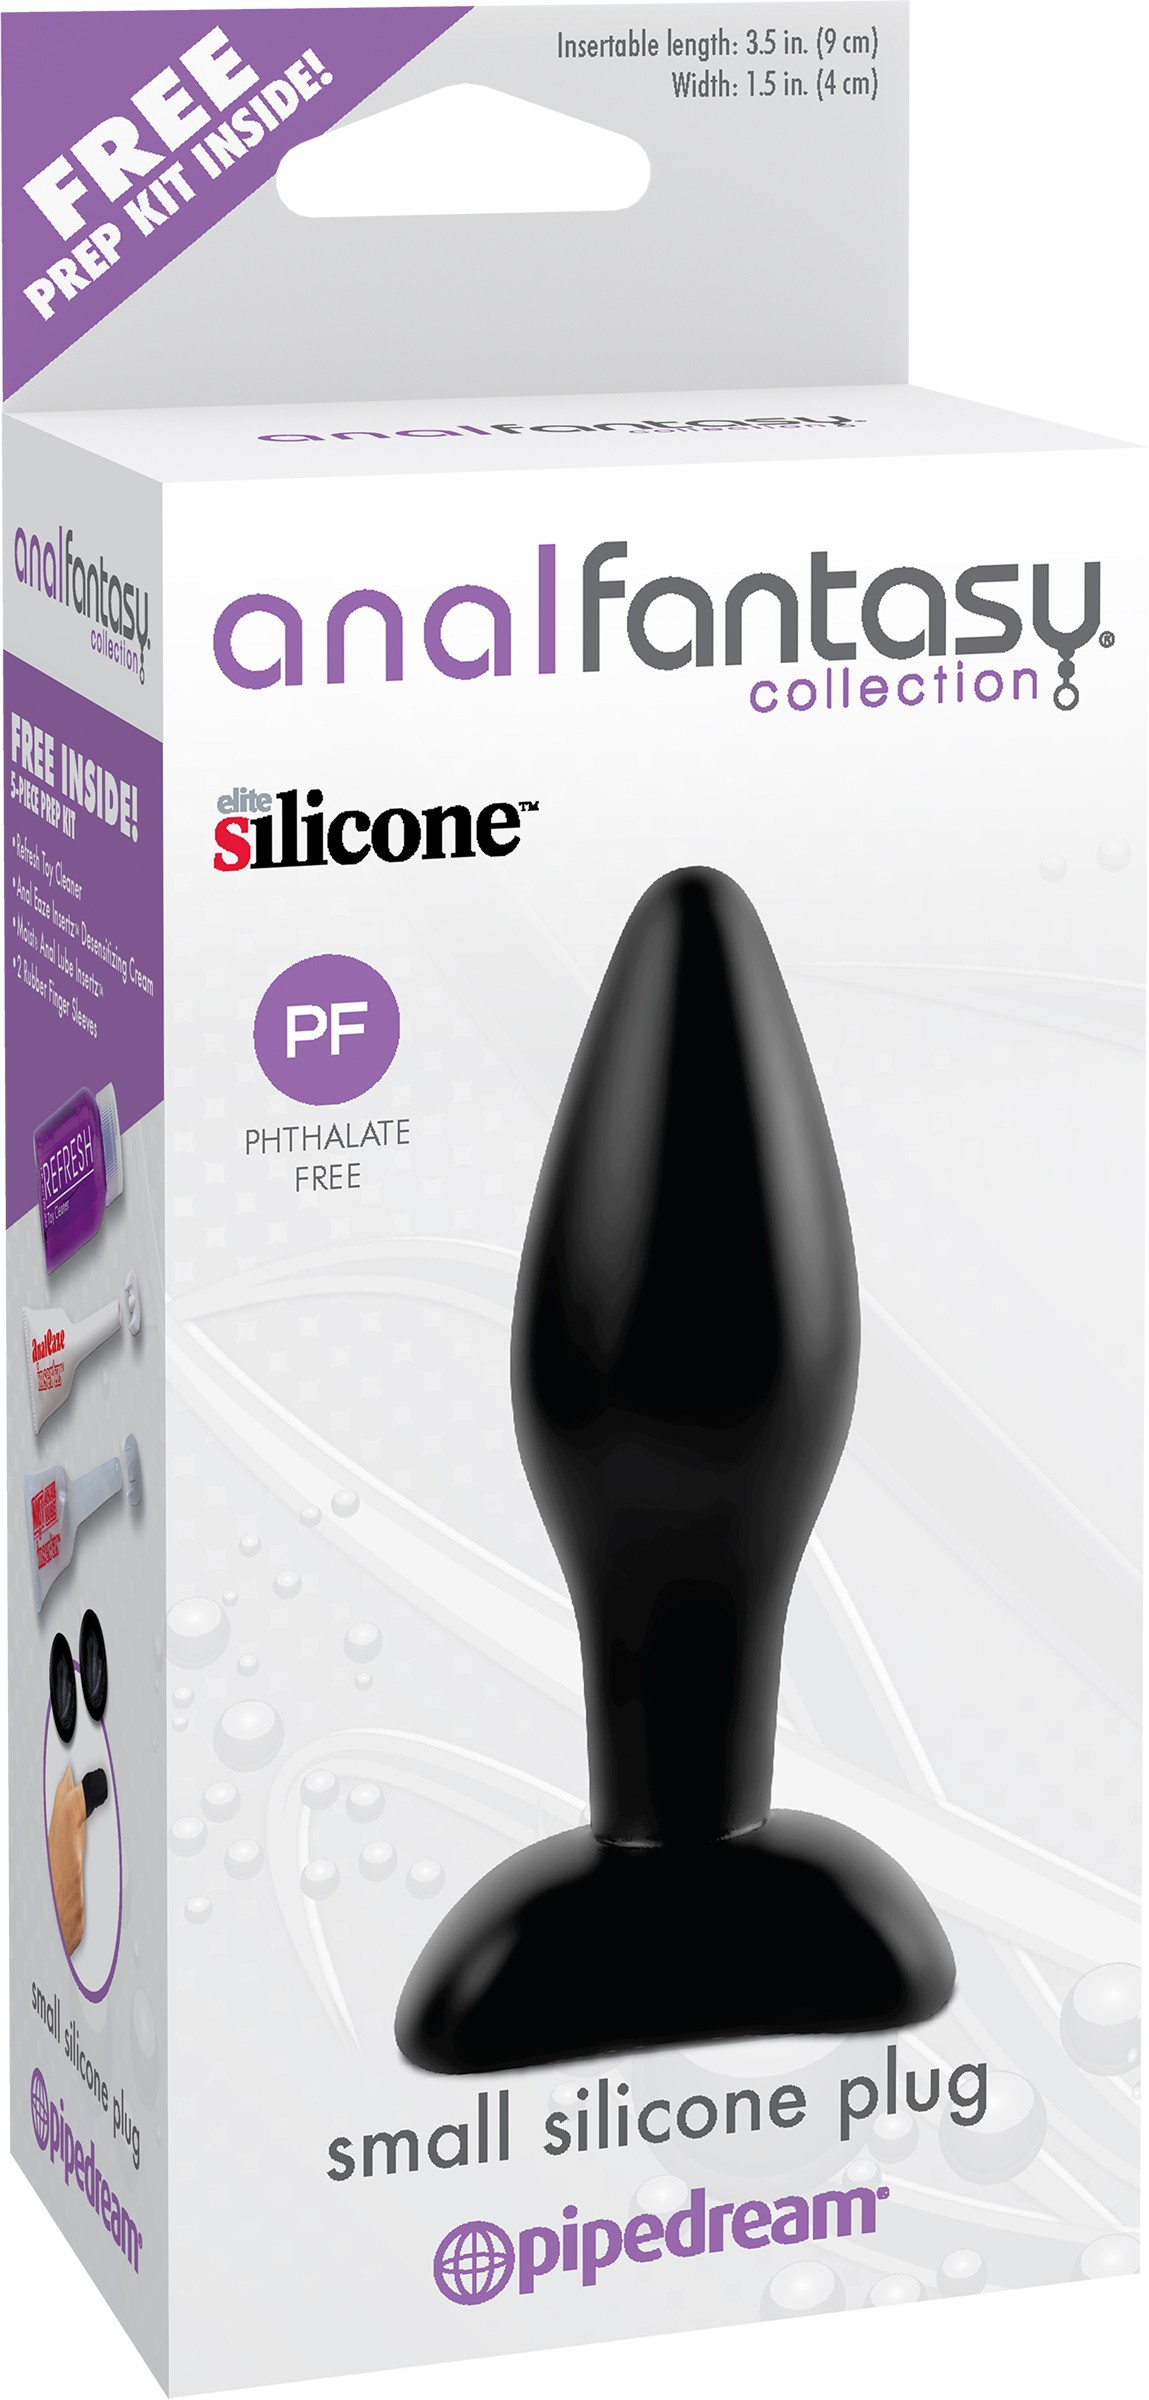 SO ANAL FANTASY COLLECTION SMALL SILICONE PLUG